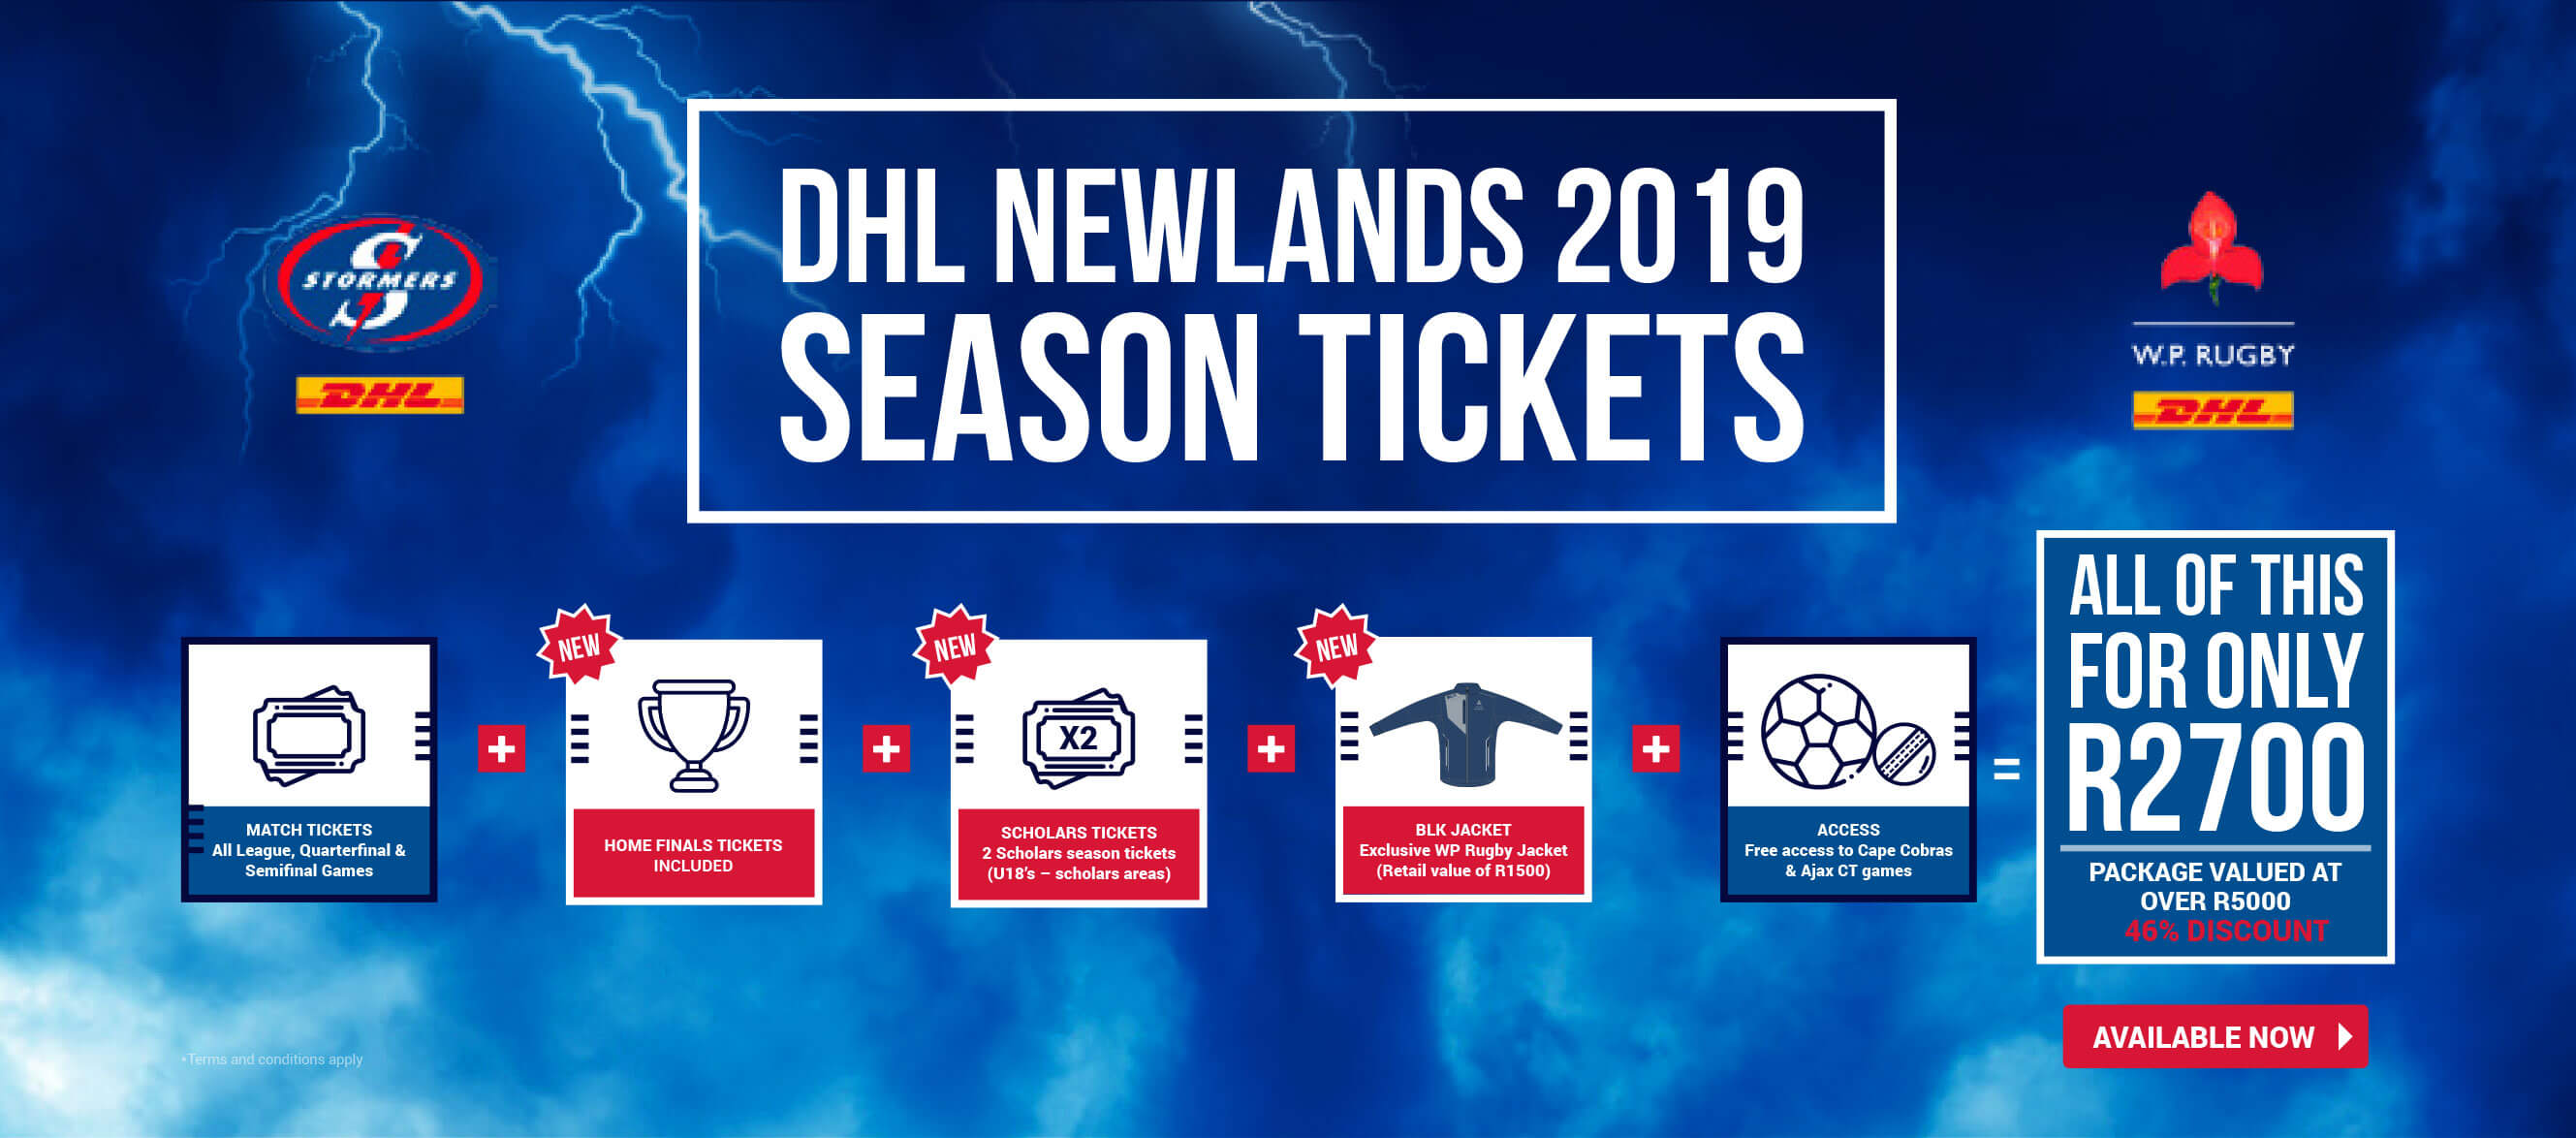 WP Rugby | Renew your DHL Newlands 2019 season tickets NOW